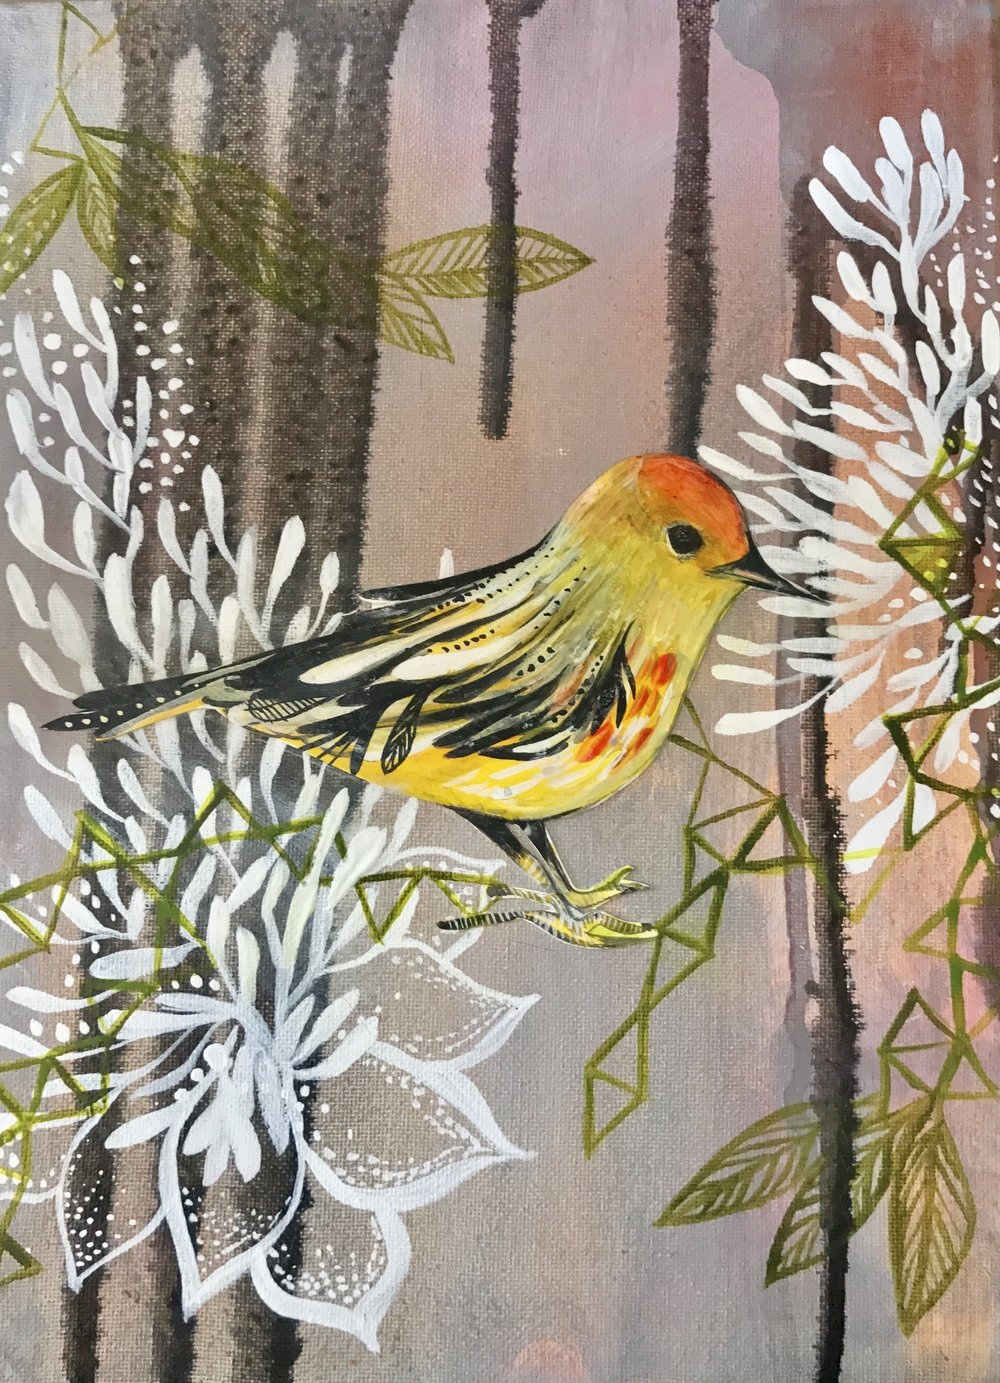 One of three birdies from commission, called the yellow mangrove from Galapagos Island.